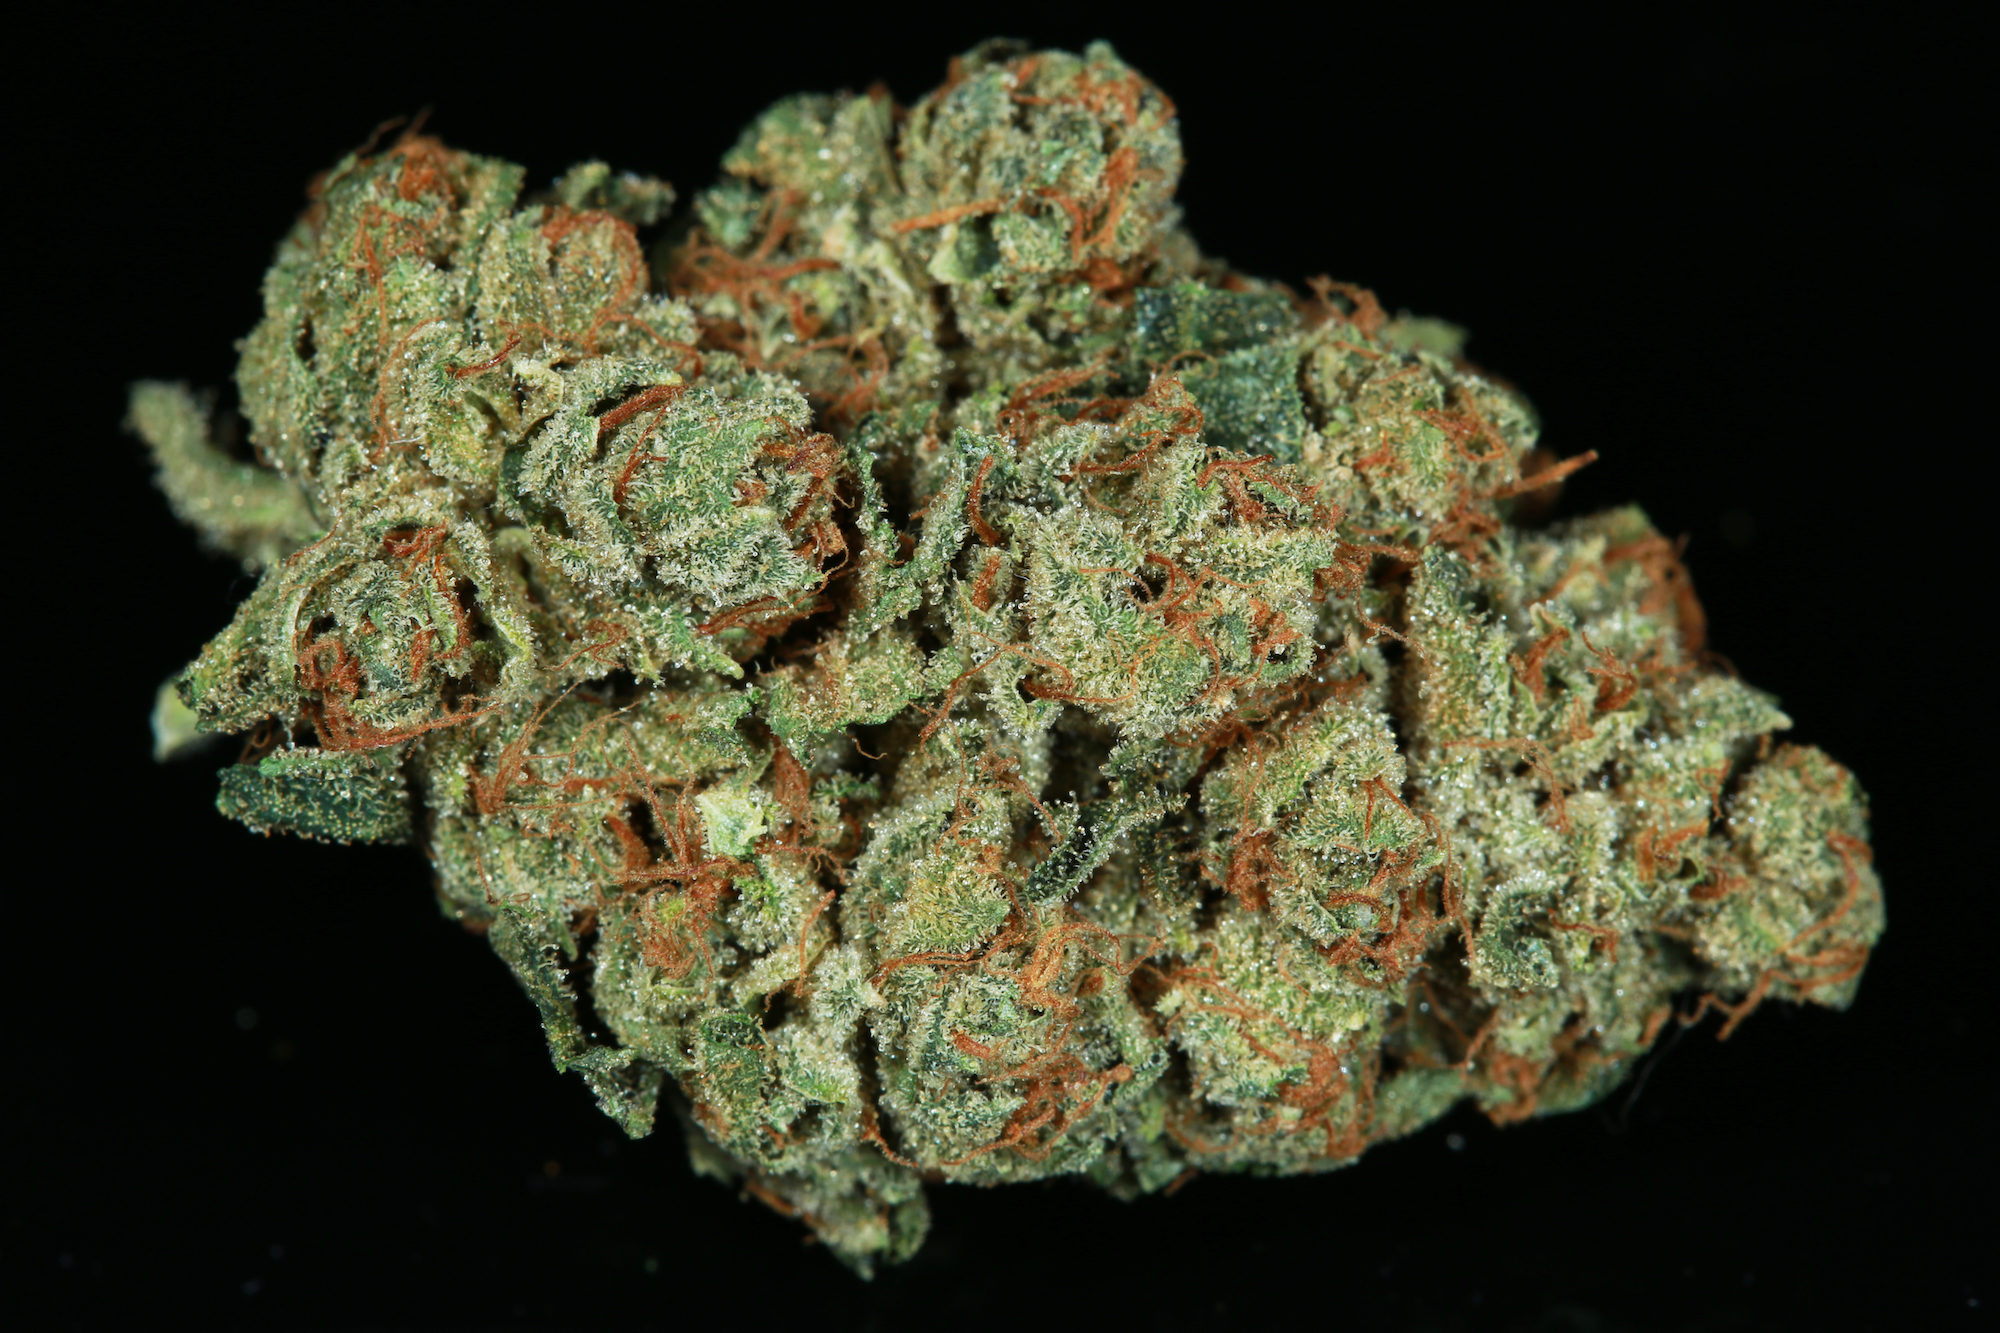 SFV-OG-marijuana-matrix-nevada-best-weed-ever-3